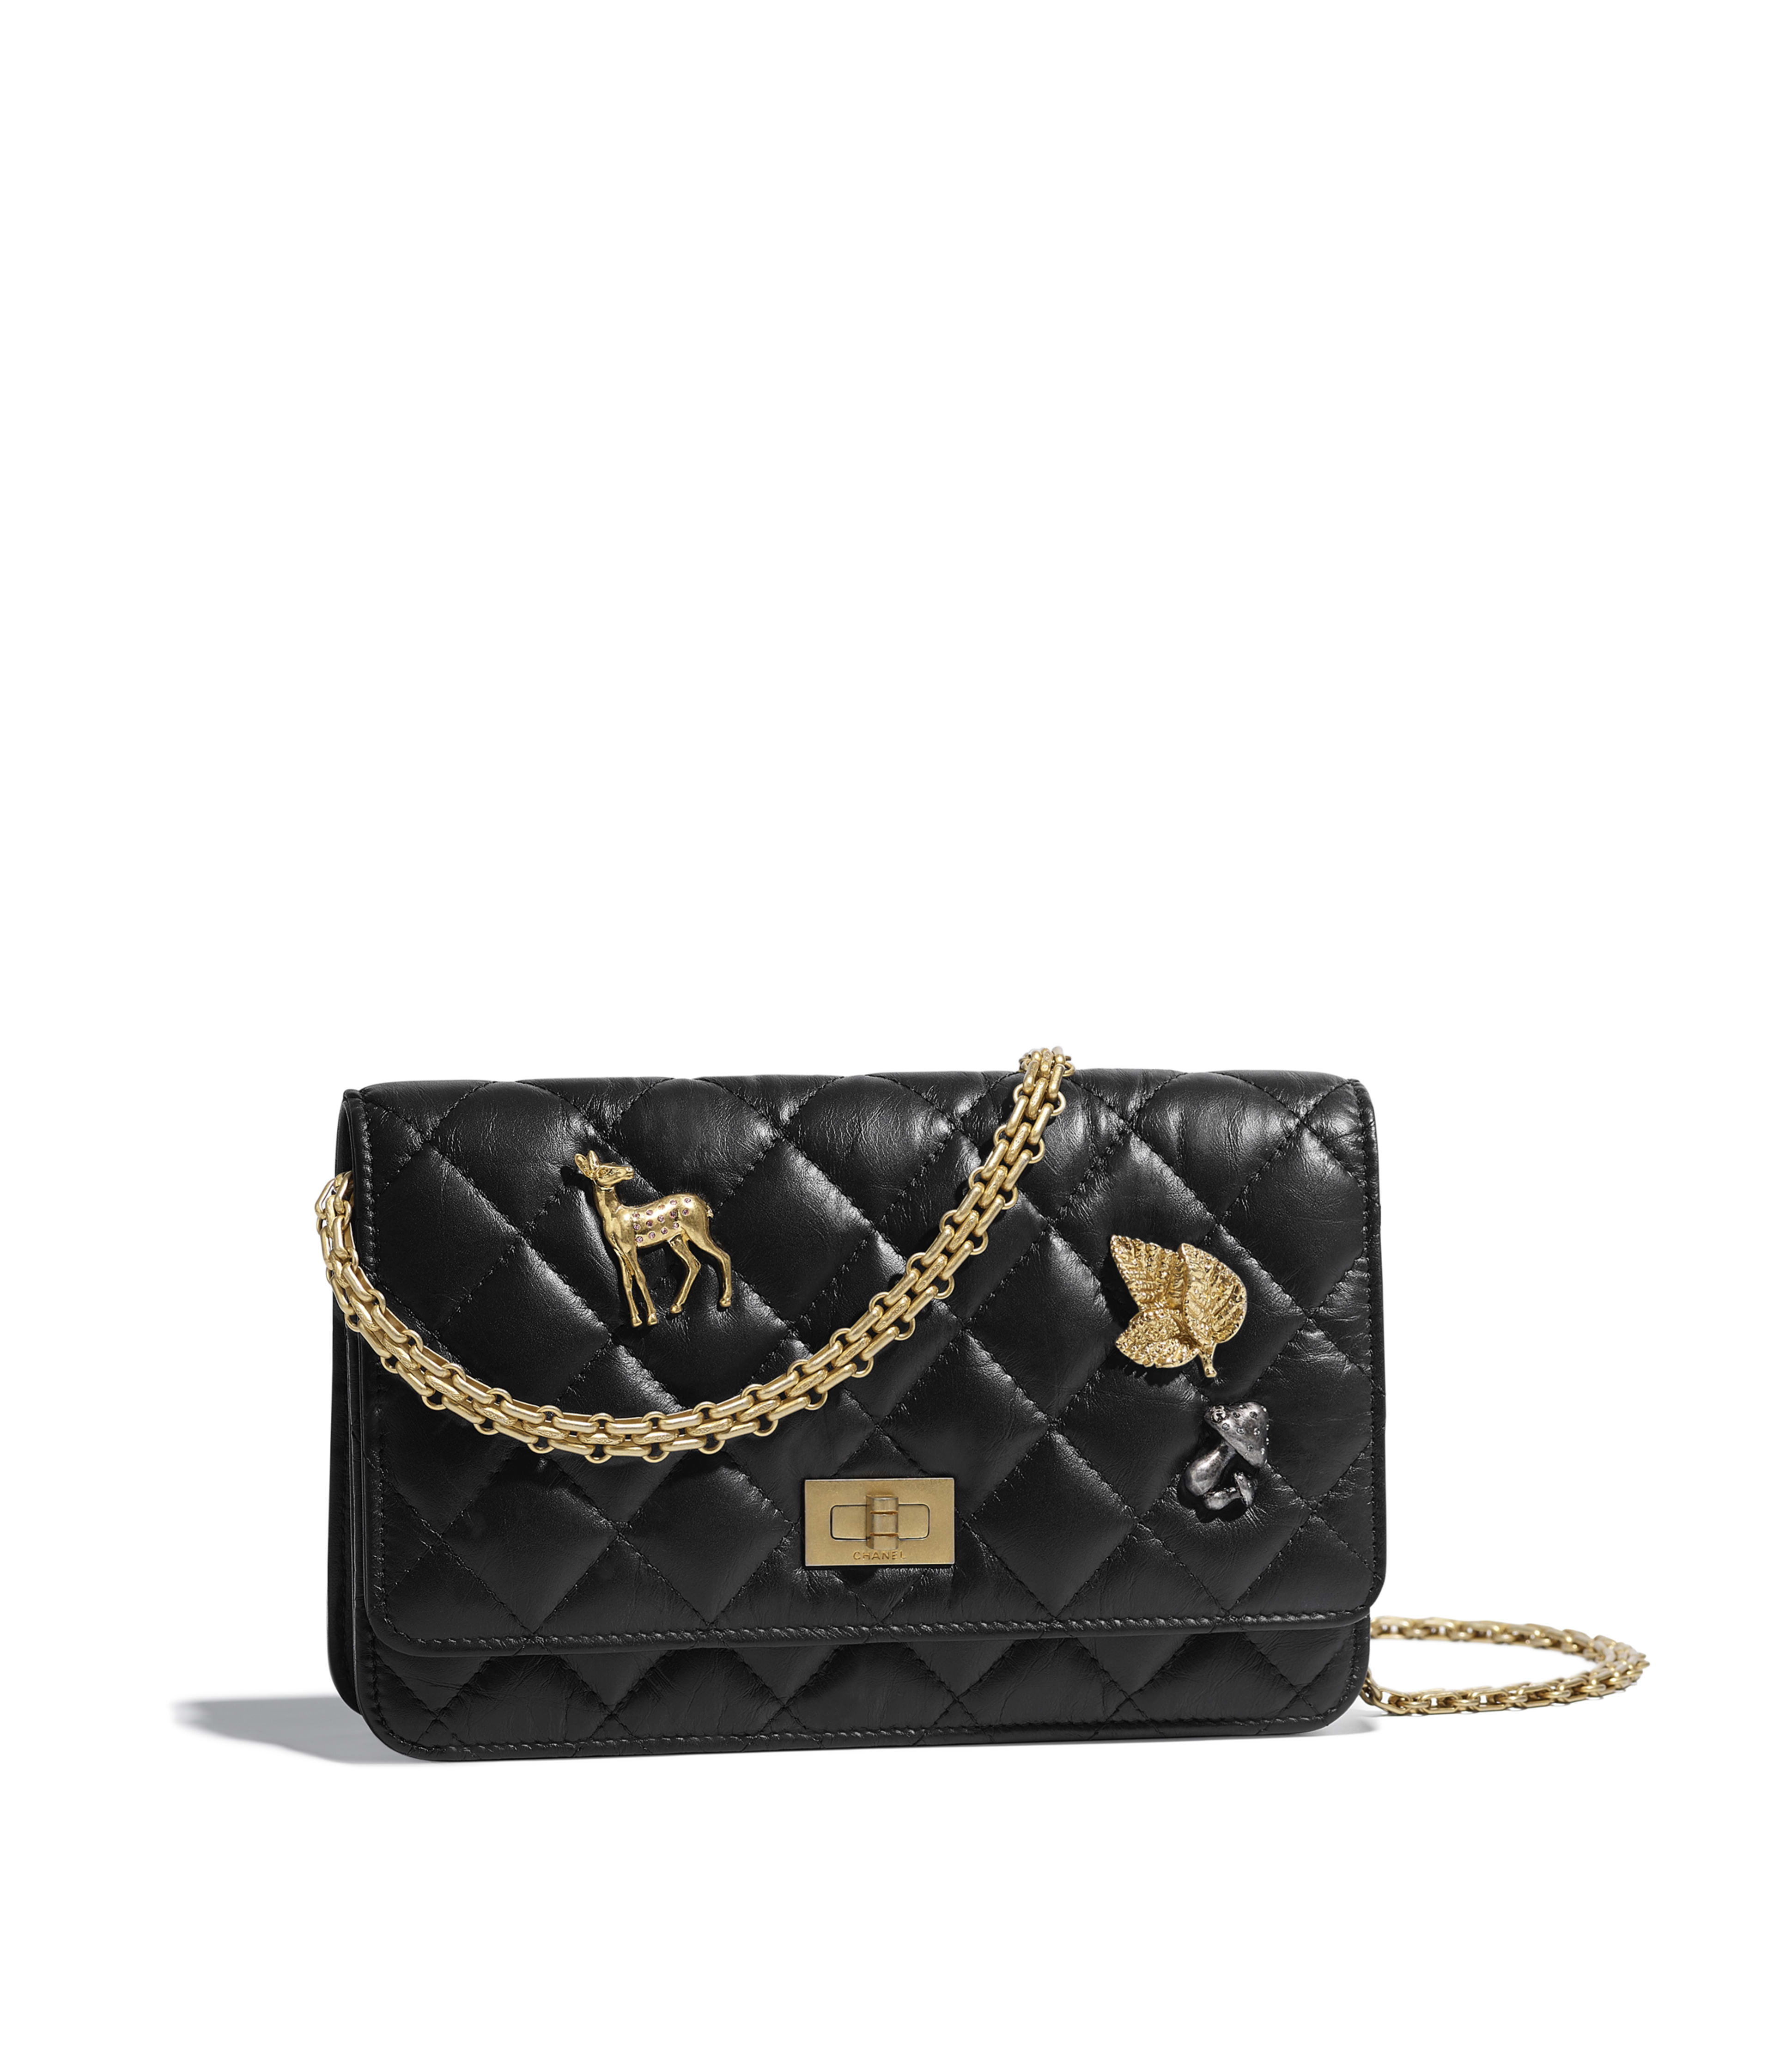 2.55 Wallet on Chain Aged Calfskin, Charms   Gold-Tone Metal, Black Ref.  A70328Y83883C3906 013c75ad803